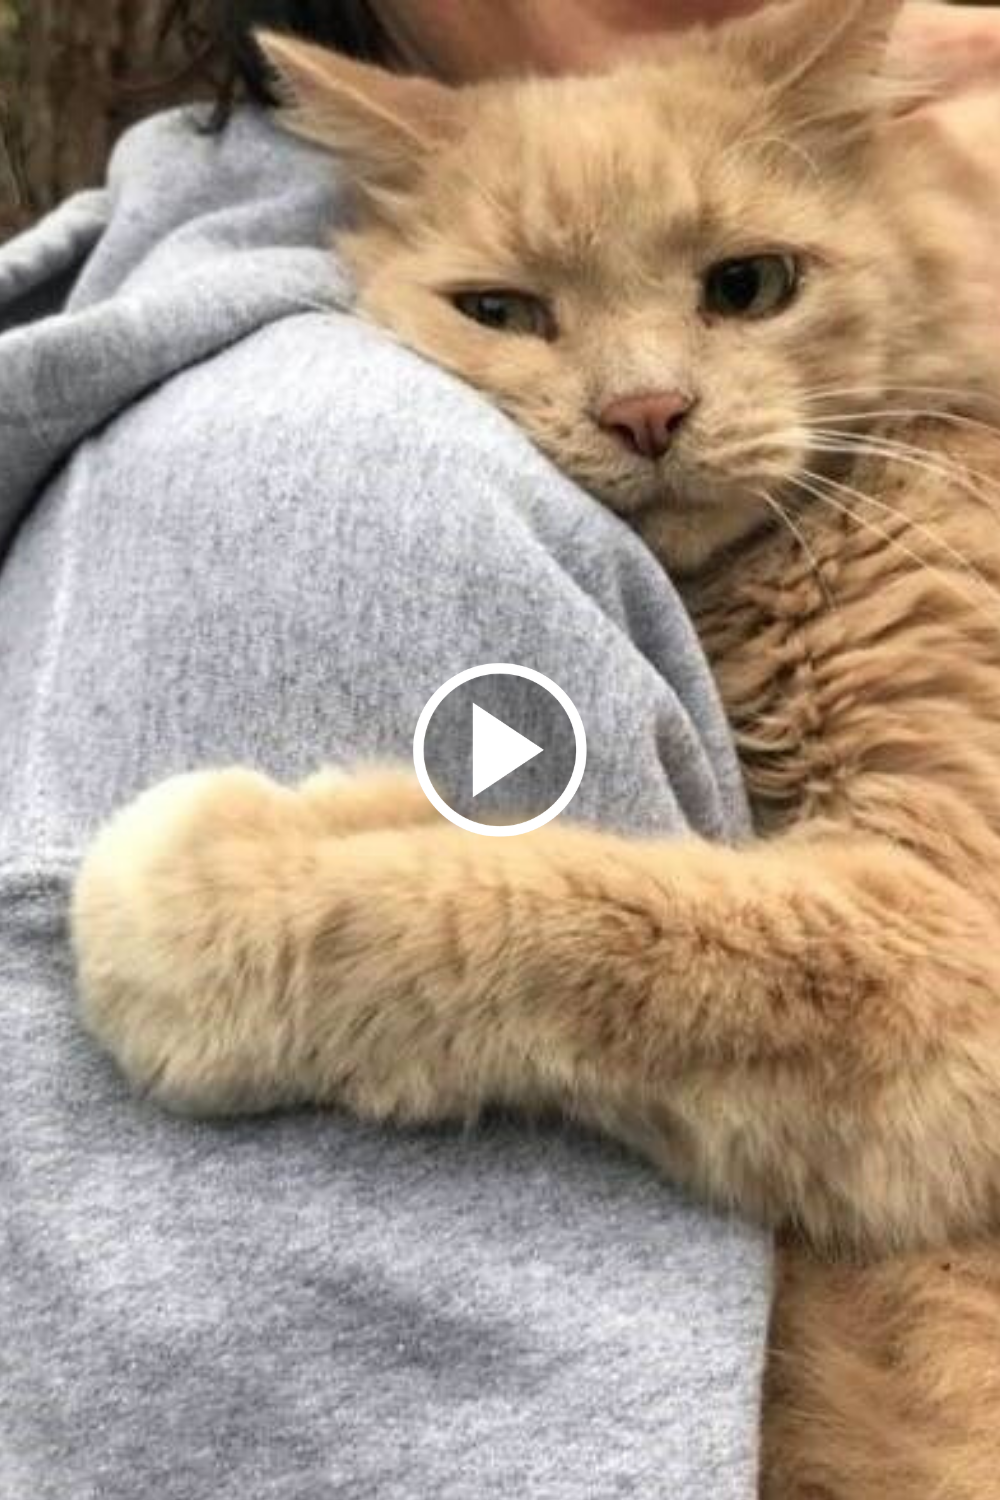 Tiktok Pets Funny And Cute Pets Compilation In 2020 Funny Cat Memes Pets Cute Animals